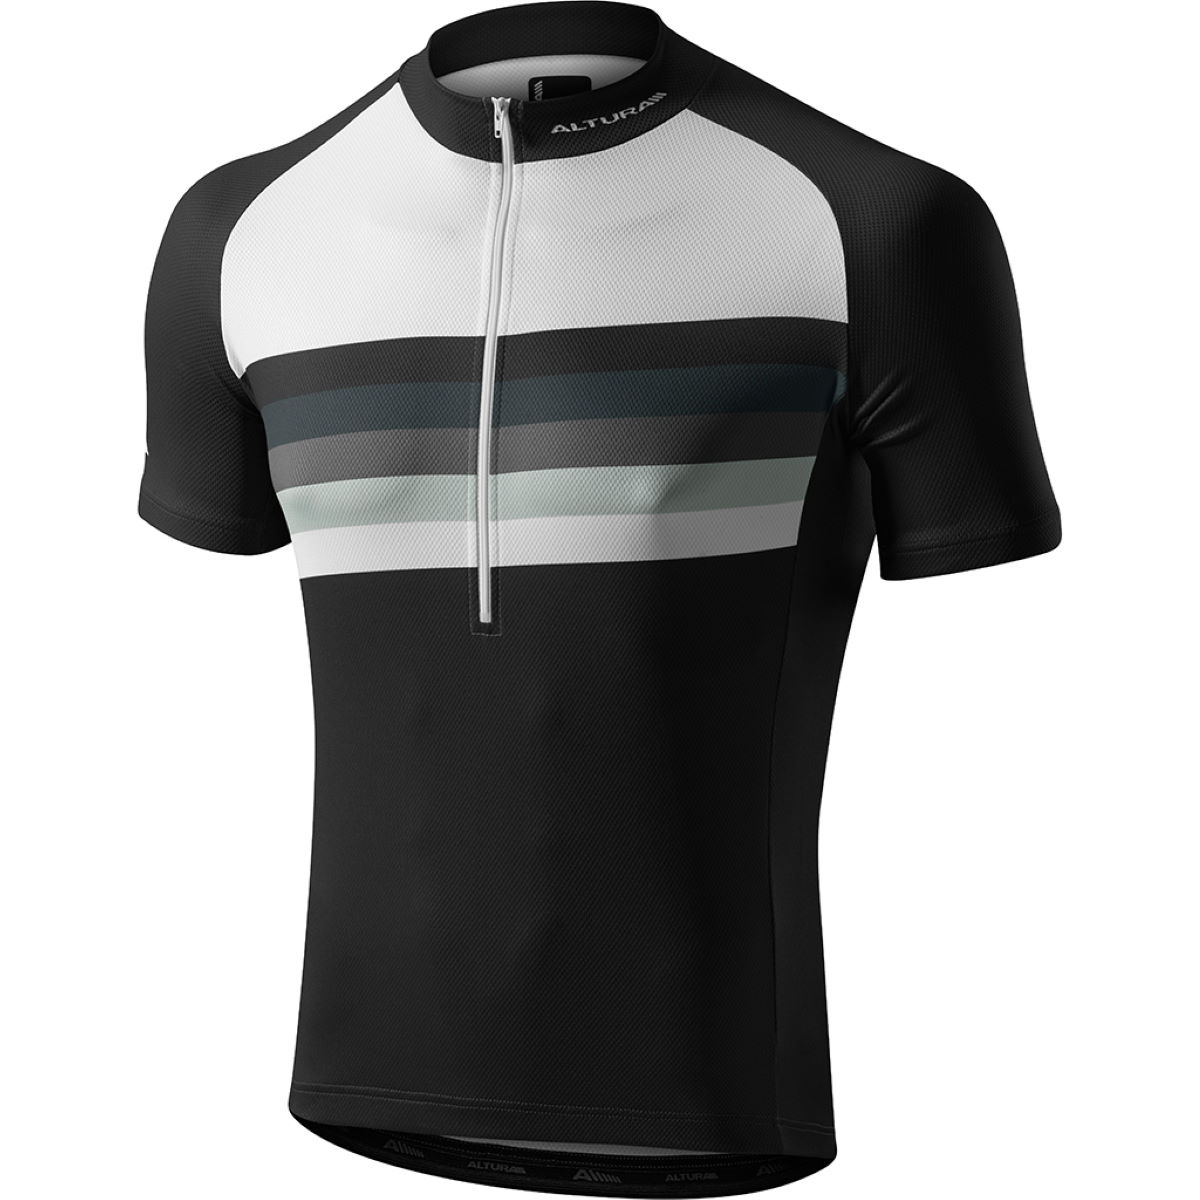 Altura Gradient Short Sleeve Jersey - Medium Black